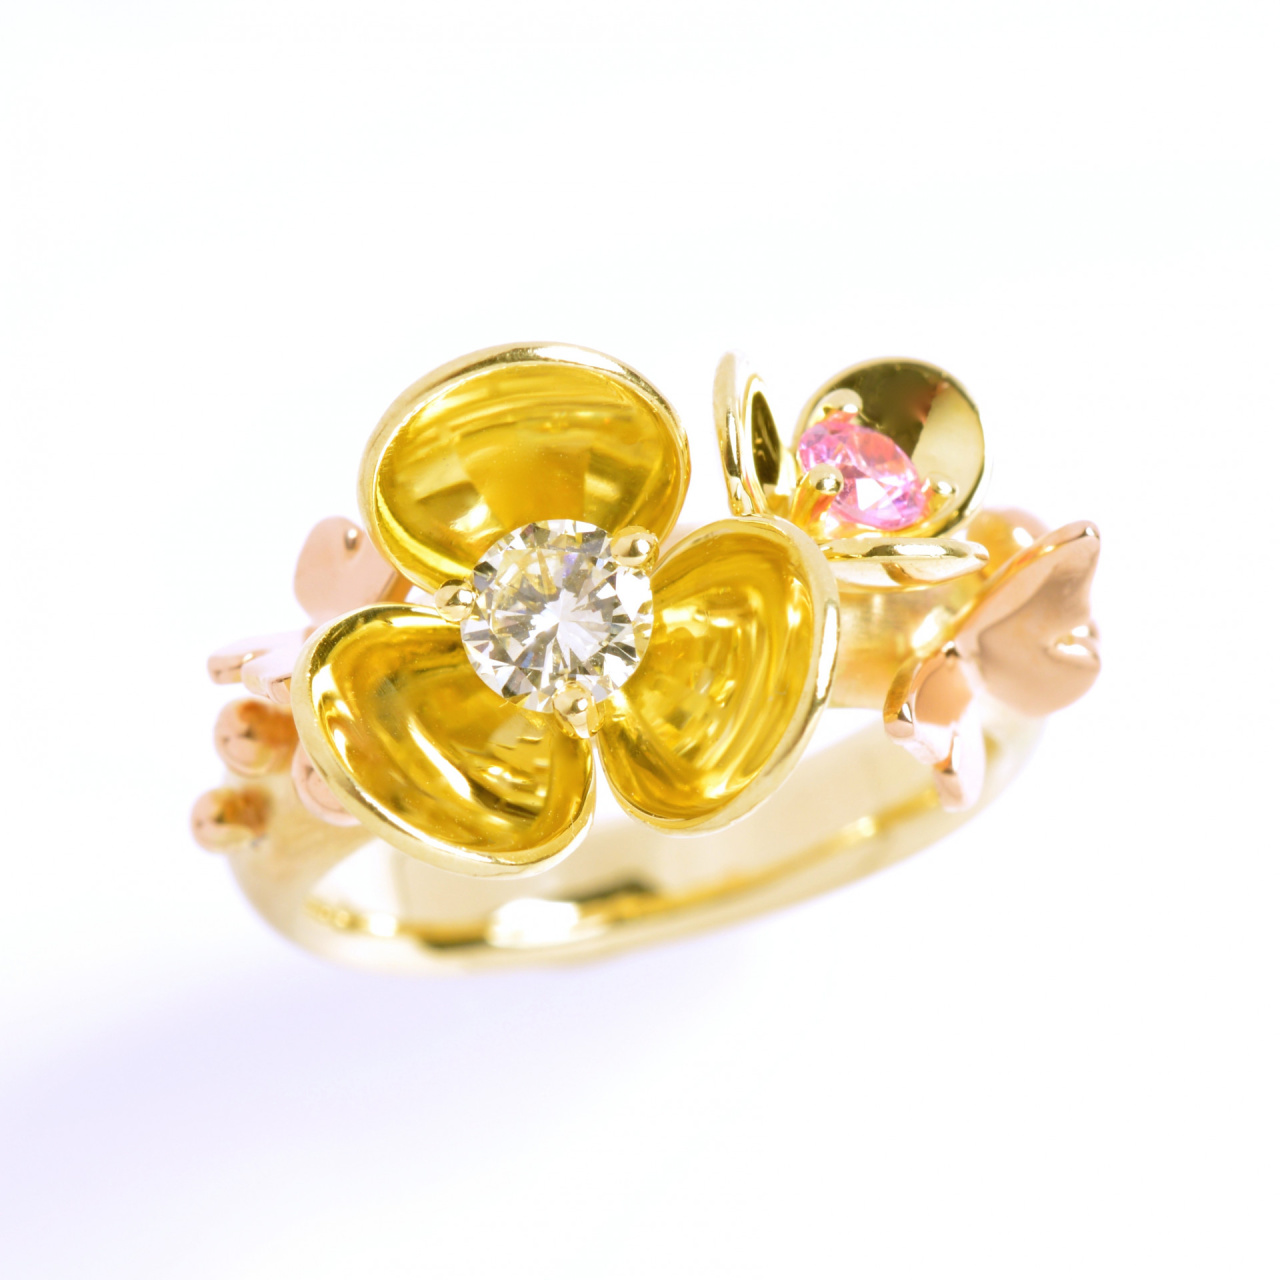 Flower Ring Yellow And Red Gold With Diamond And Pink Sapphire